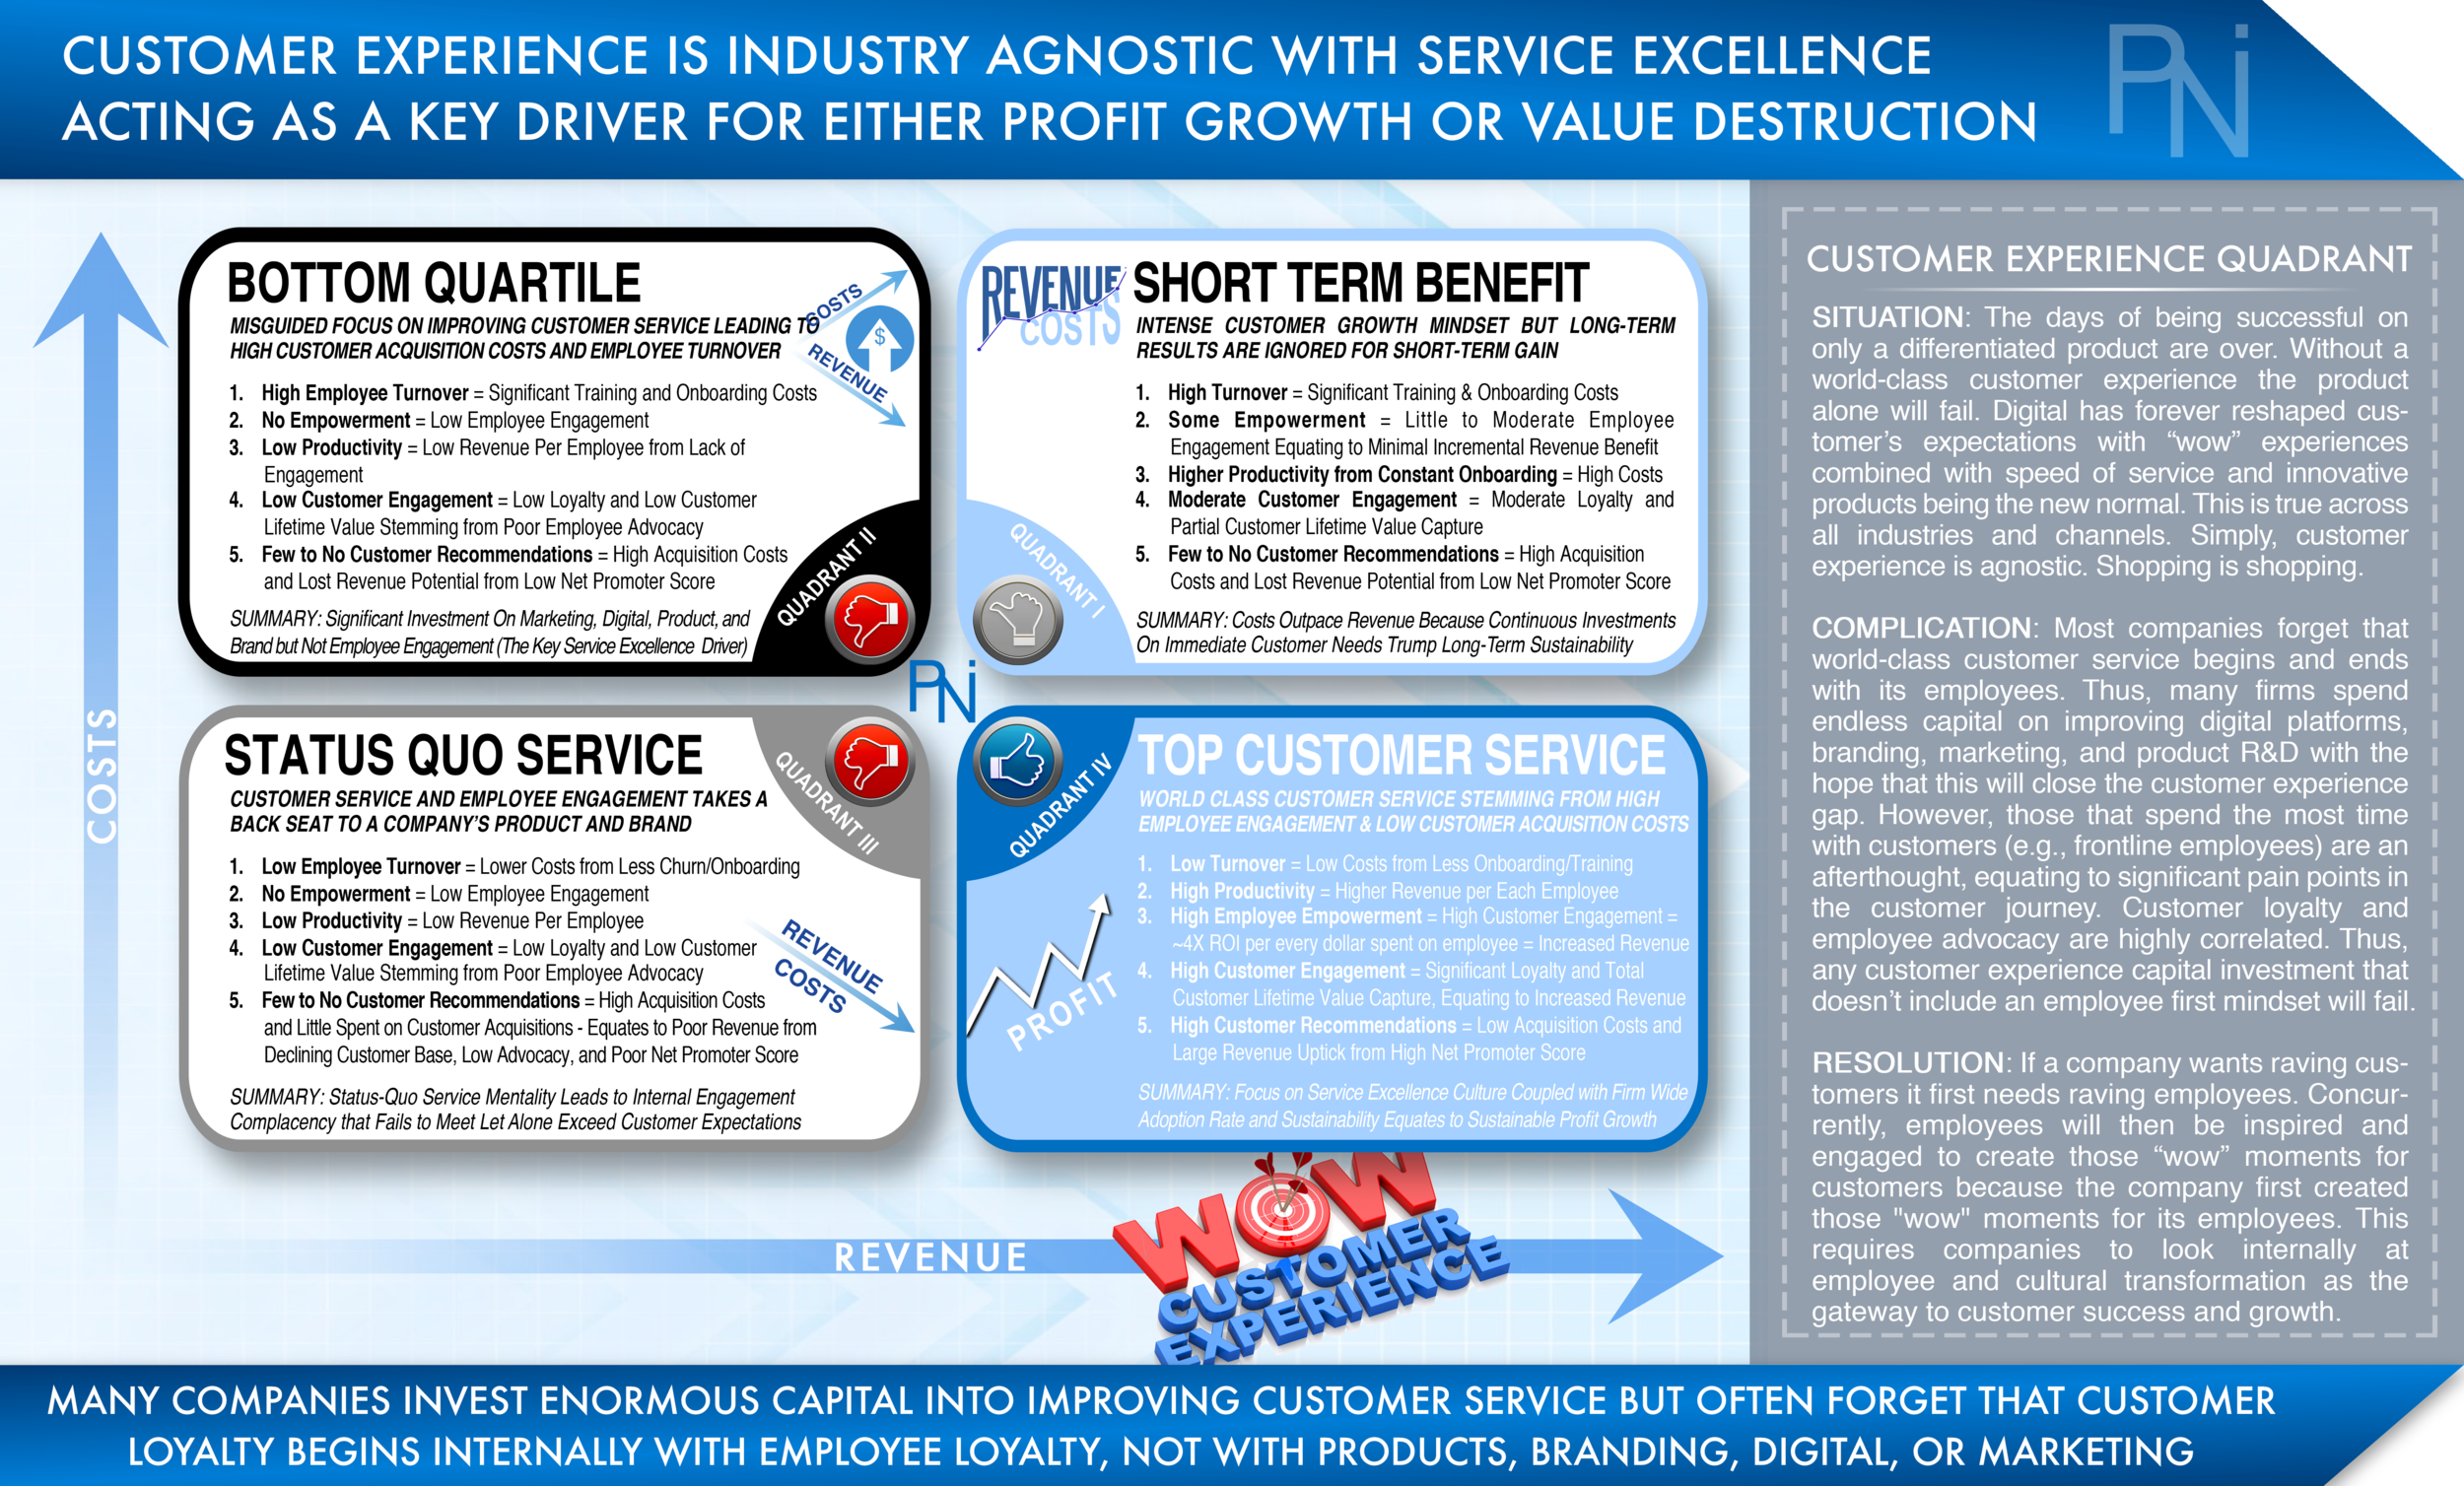 CUSTOMER EXPERIENCE QUADRANT™  Exhibit 3  (Click to Enlarge)